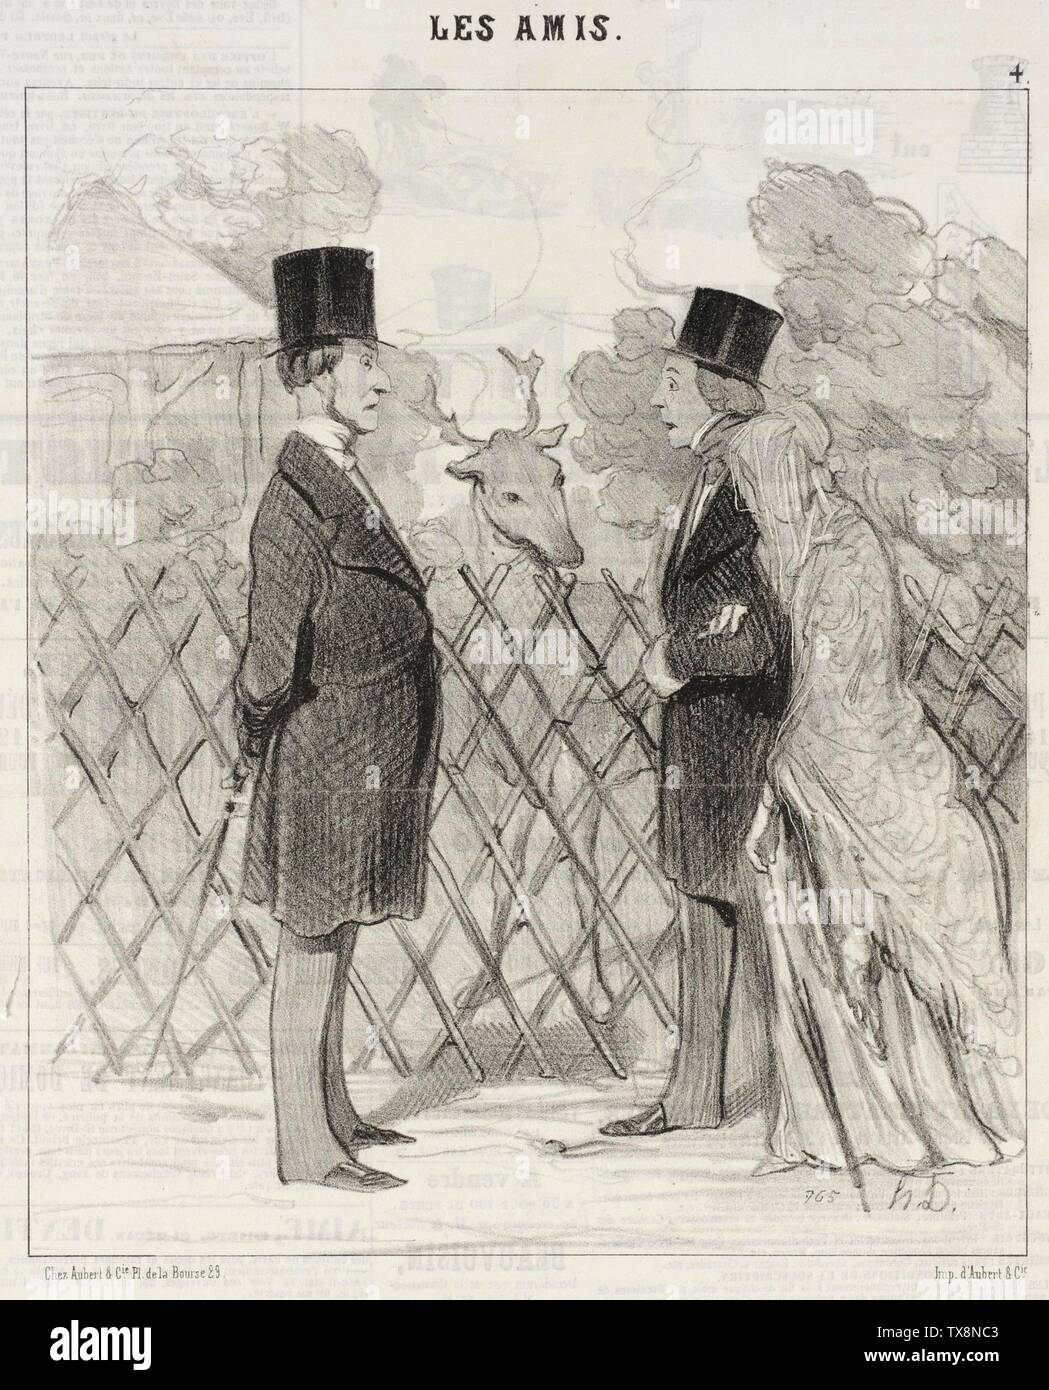 'Madame Cabassol se promène...; English:  France, 1845 Series: Les Amis, no. 4 Periodical: Le Charivari, 18 May 1845 Prints; lithographs Lithograph Sheet: 9 1/8 x 7 13/16 in. (23.18 x 19.84 cm) Gift of Mrs. Florence Victor from The David and Florence Victor Collection (M.91.82.205) Prints and Drawings; 1845date QS:P571,+1845-00-00T00:00:00Z/9; ' - Stock Image